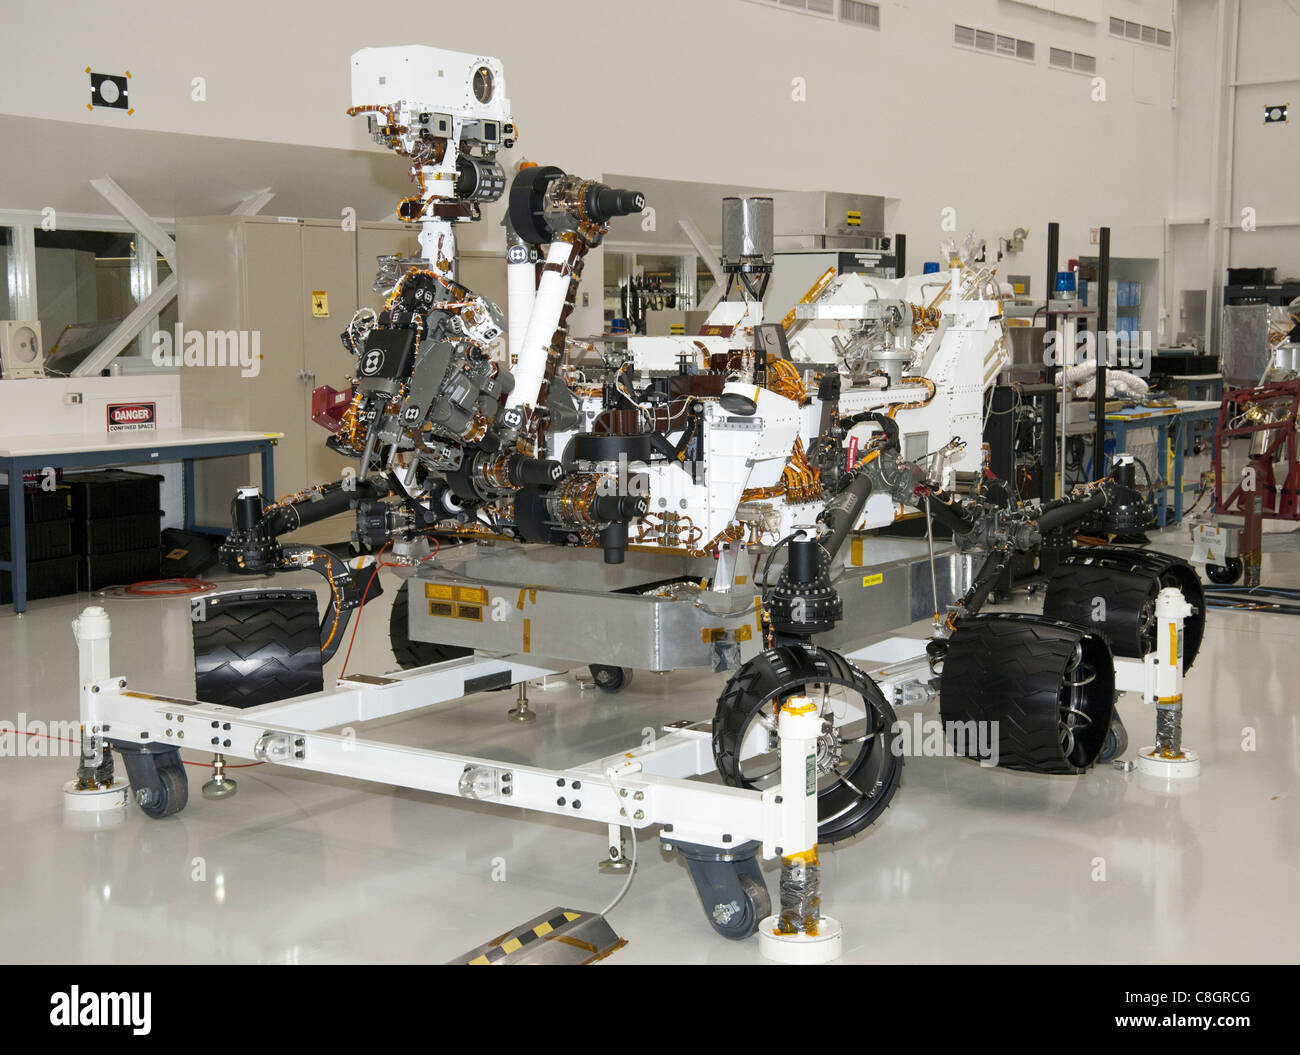 NASA Mars Rover Curiosity at JPL, View from Front Left Corner - Stock Image